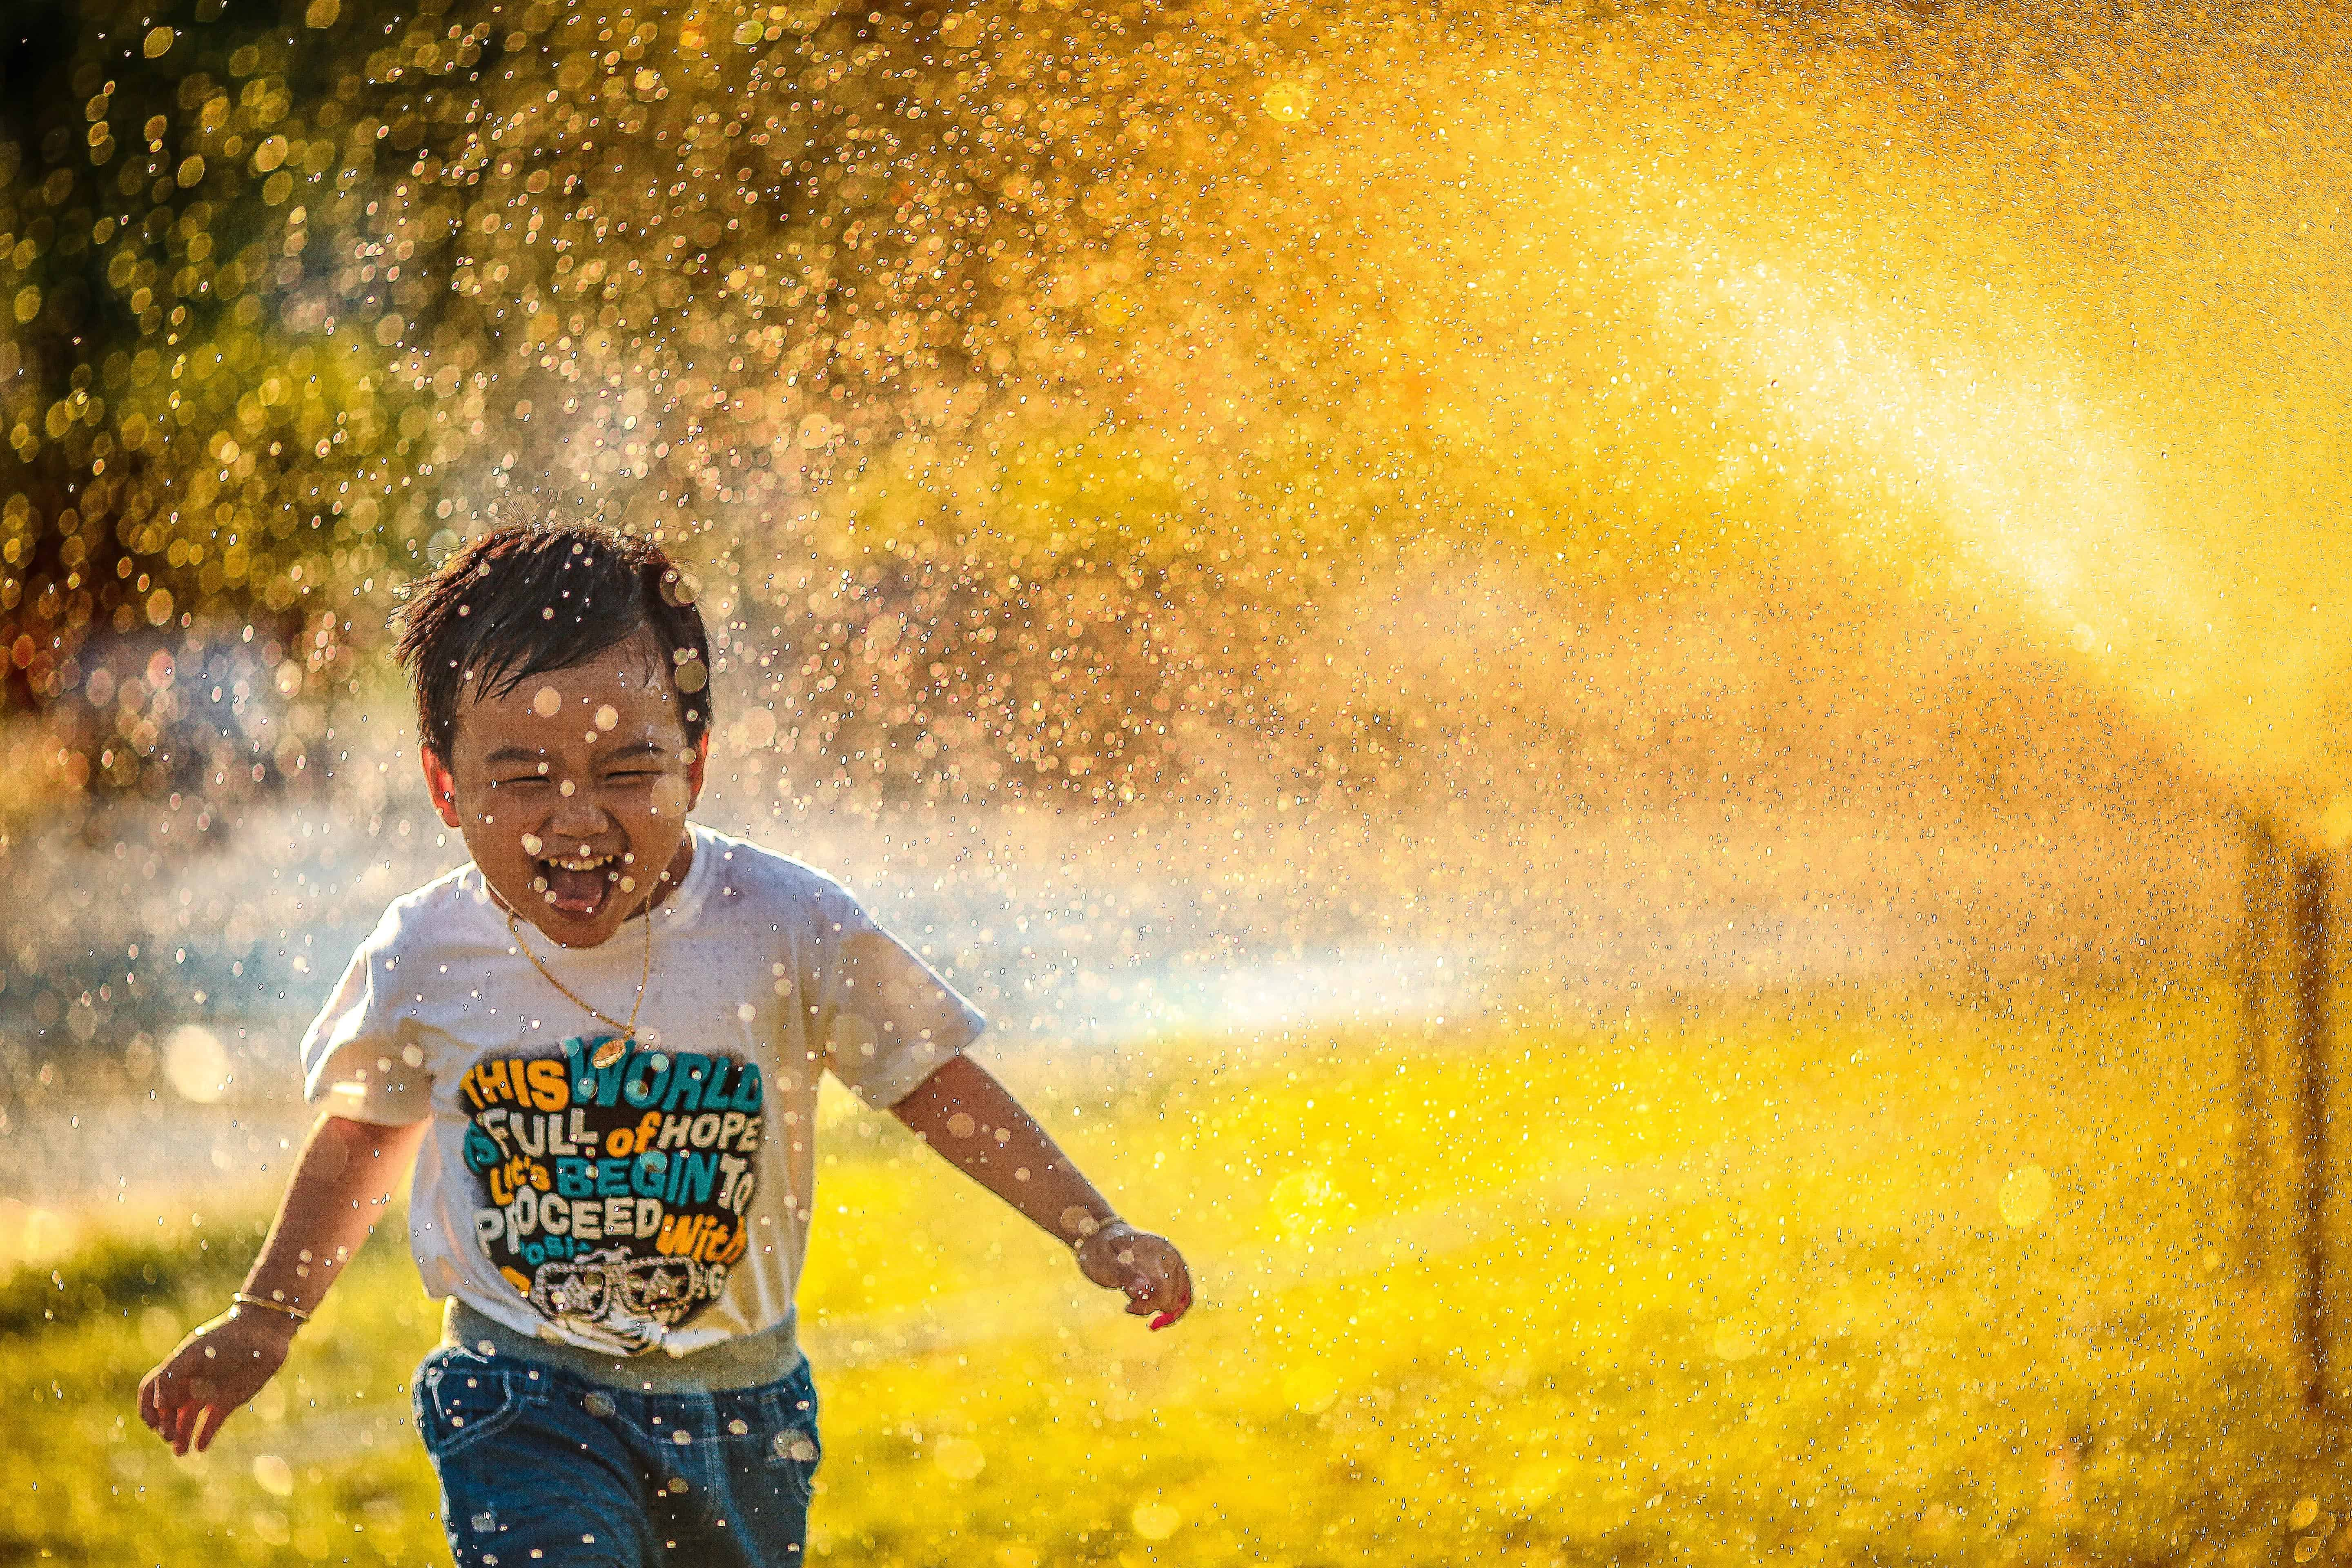 How are you at regulating emotions? Emotion regulation can be challenging but kids can teach us emotional regulation skills. Read more to learn how to regulate emotions as naturally as children.